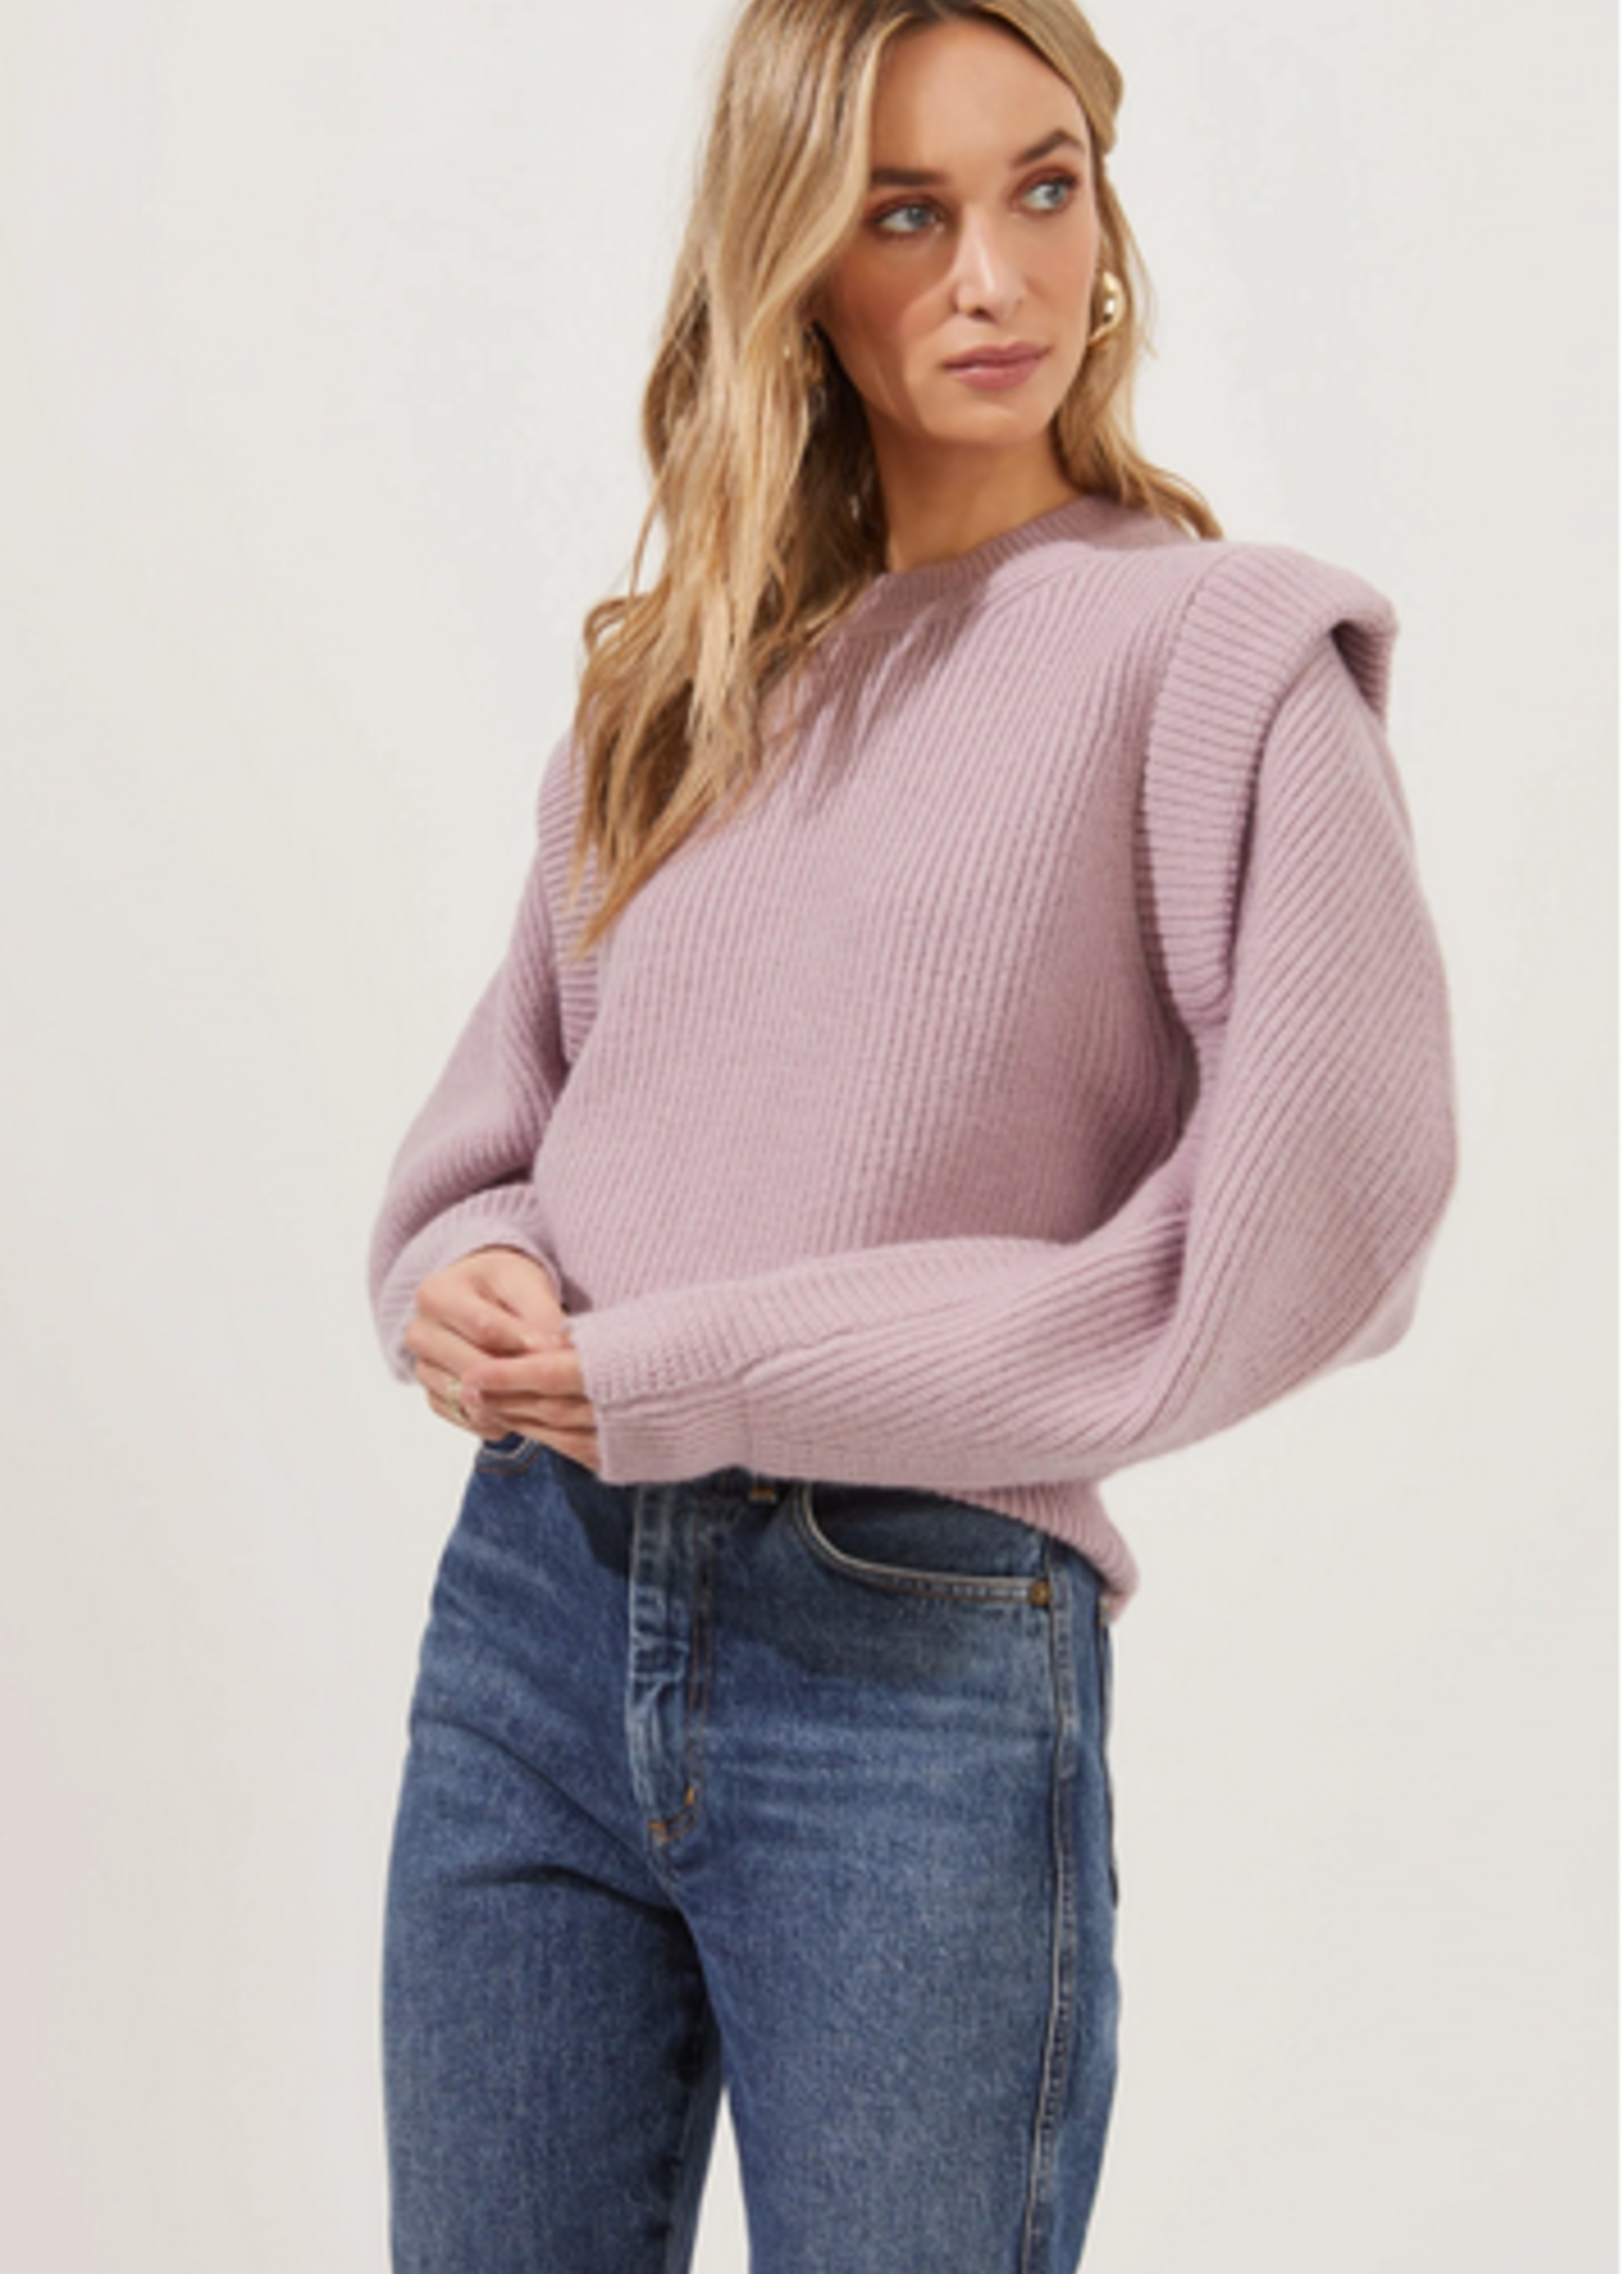 Elitaire Boutique Romina Sweater in Dusty Pink